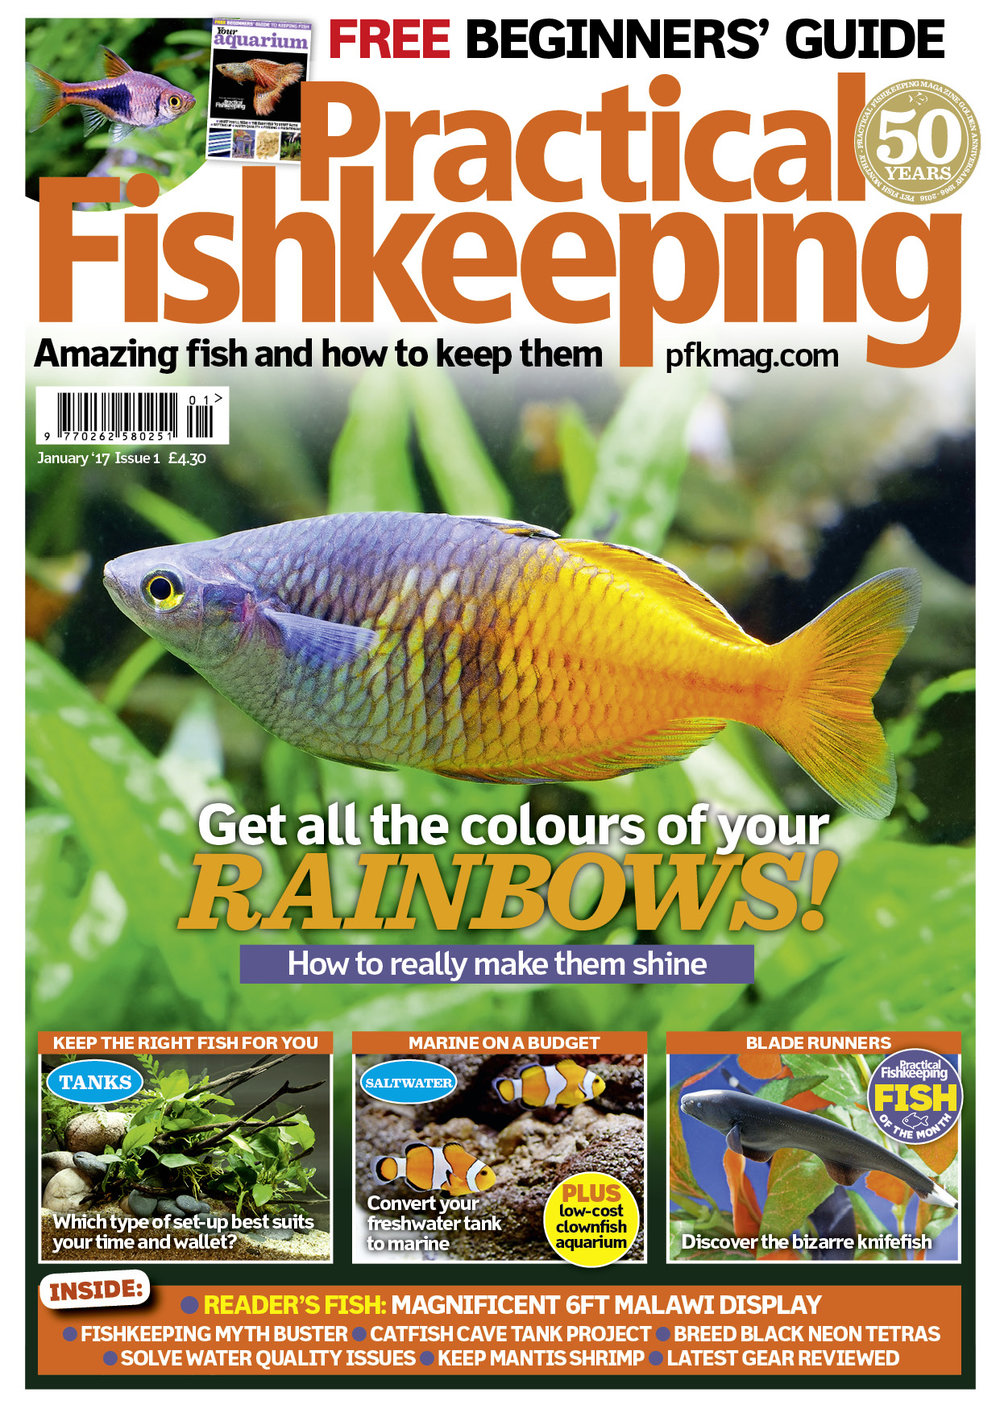 NEW-LOOK COVER!  Our January 2017 issue comes with a FREE Beginners guide. The main issue is packed full of features and advice including: Marine on a budget, converting your freshwater tank, a readers' magnificent 6ft Malawi display, breed black Neon tetras and all your FAQs answered.